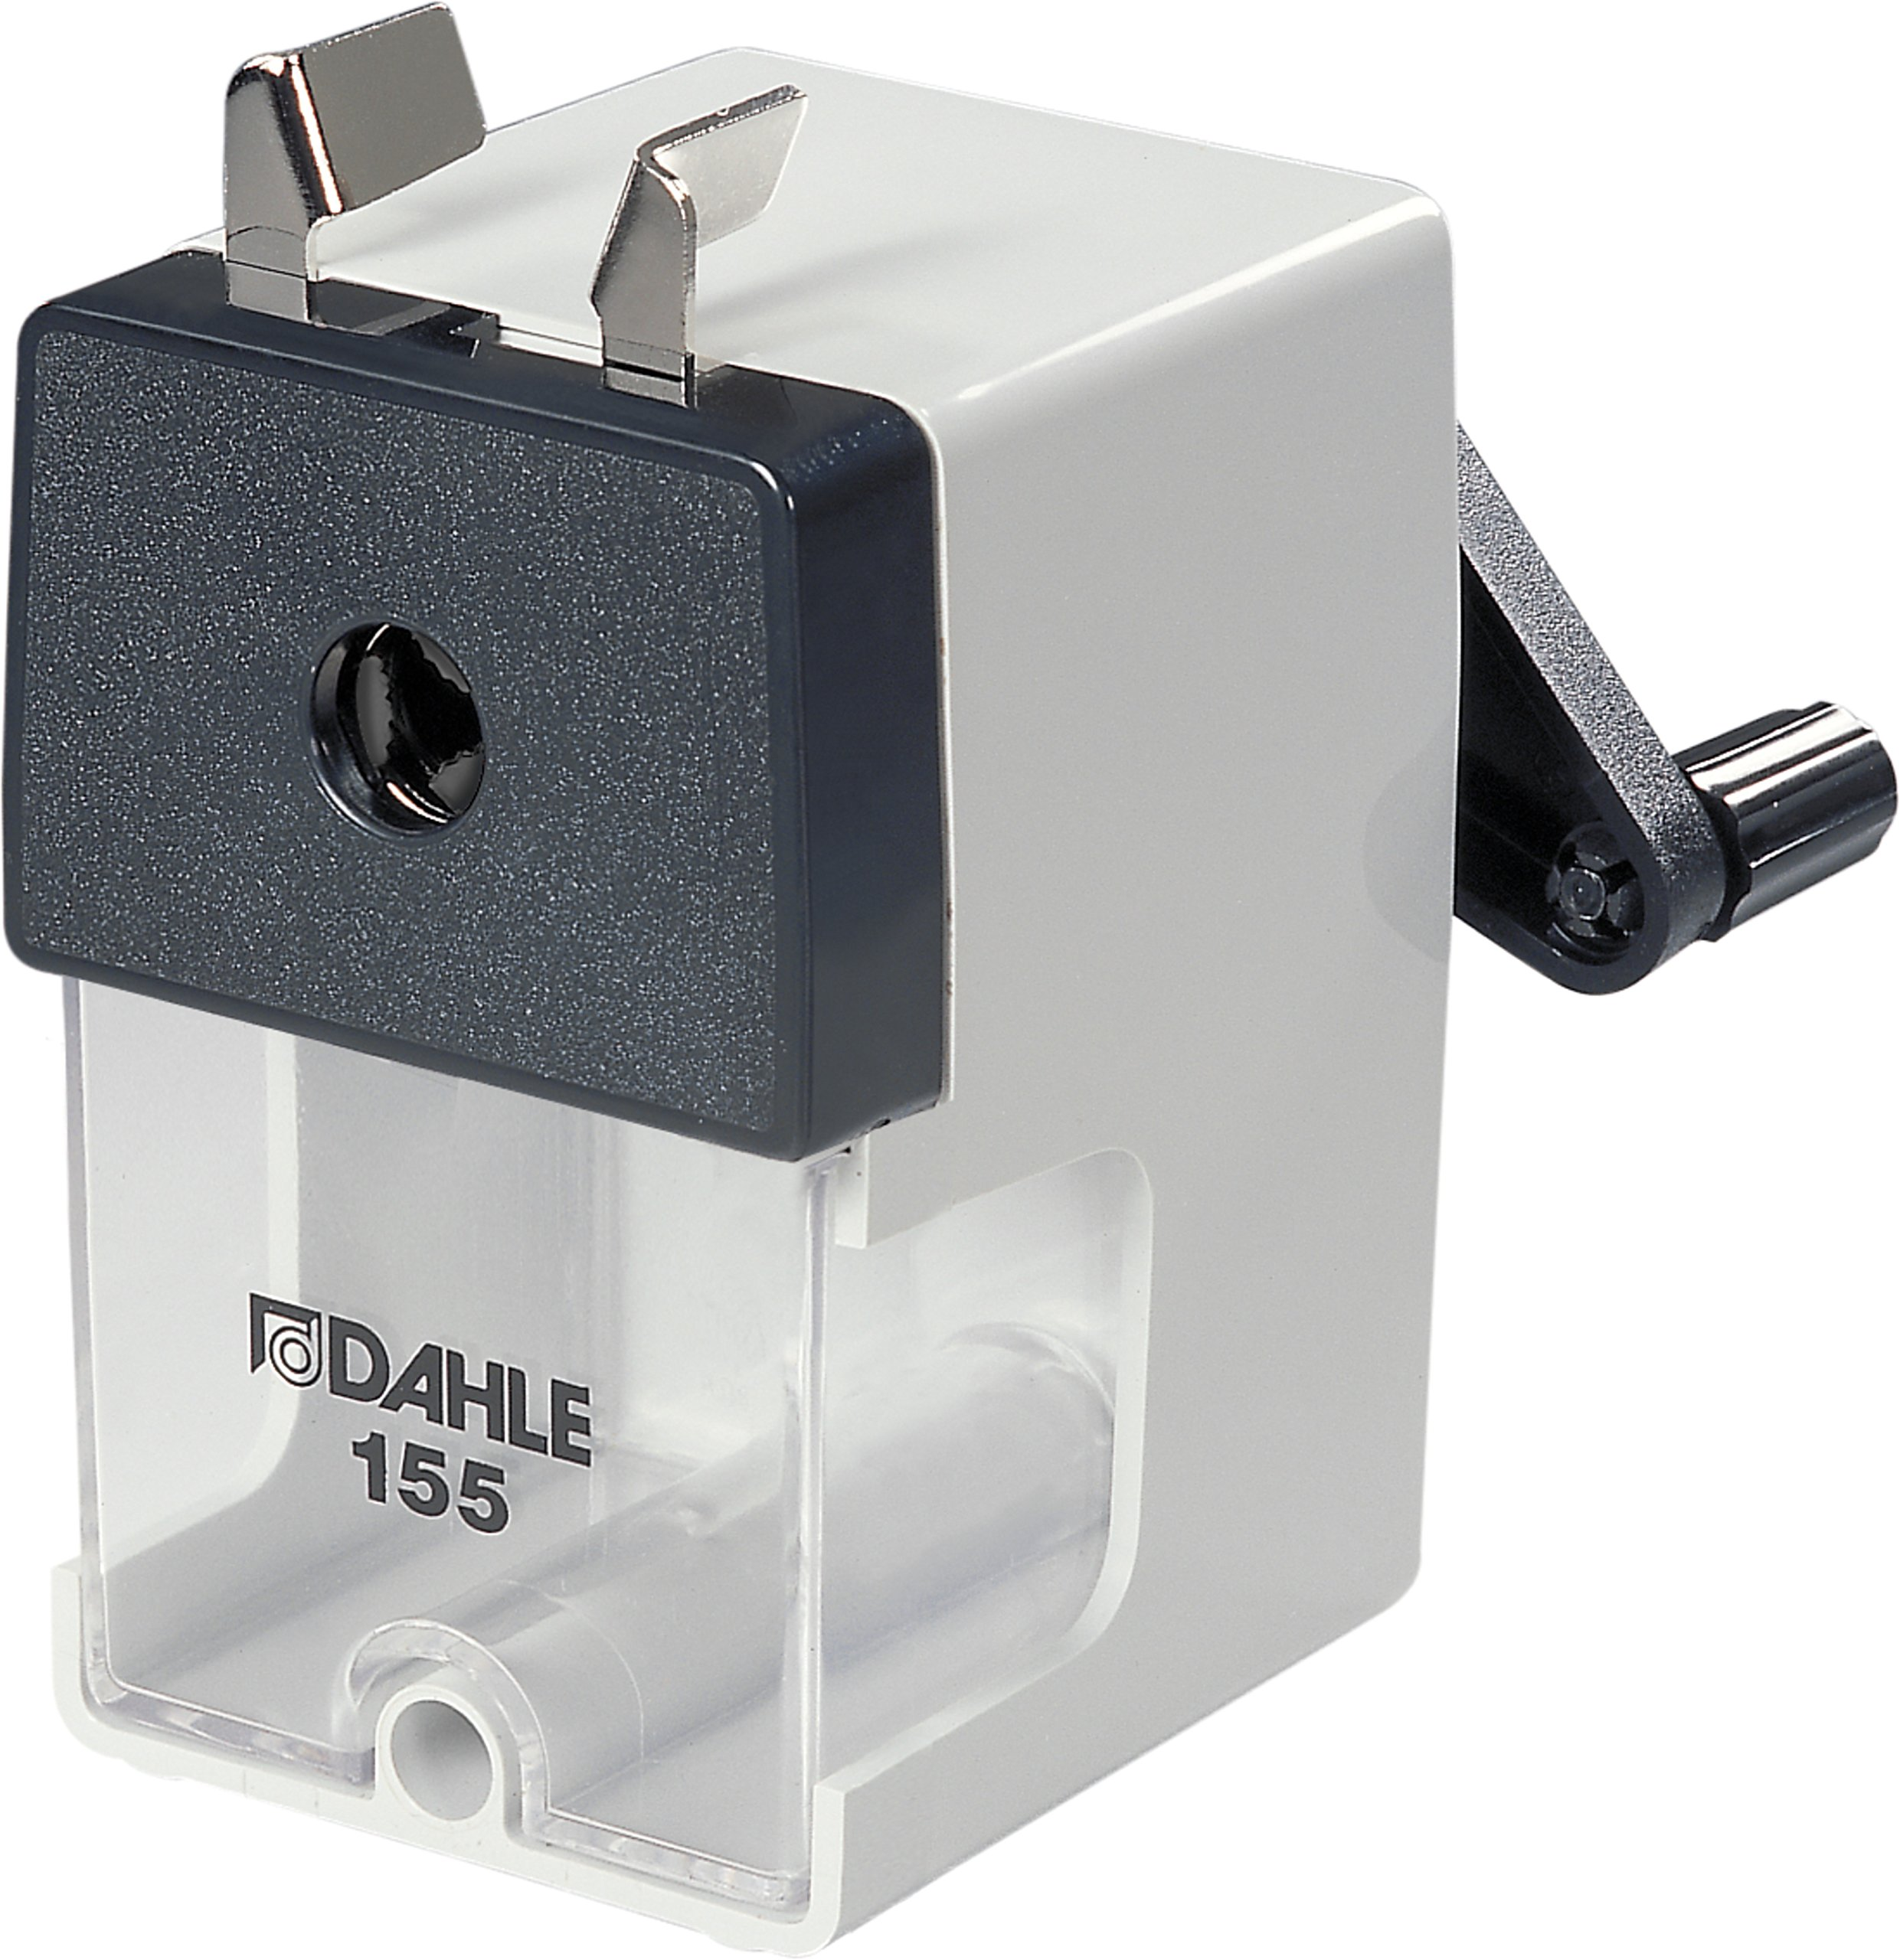 Dahle 155 Professional Pencil Sharpener w/Point Adjuster & Automatic Cutting System, Accepts Graphite & Oversized Artist Pencils